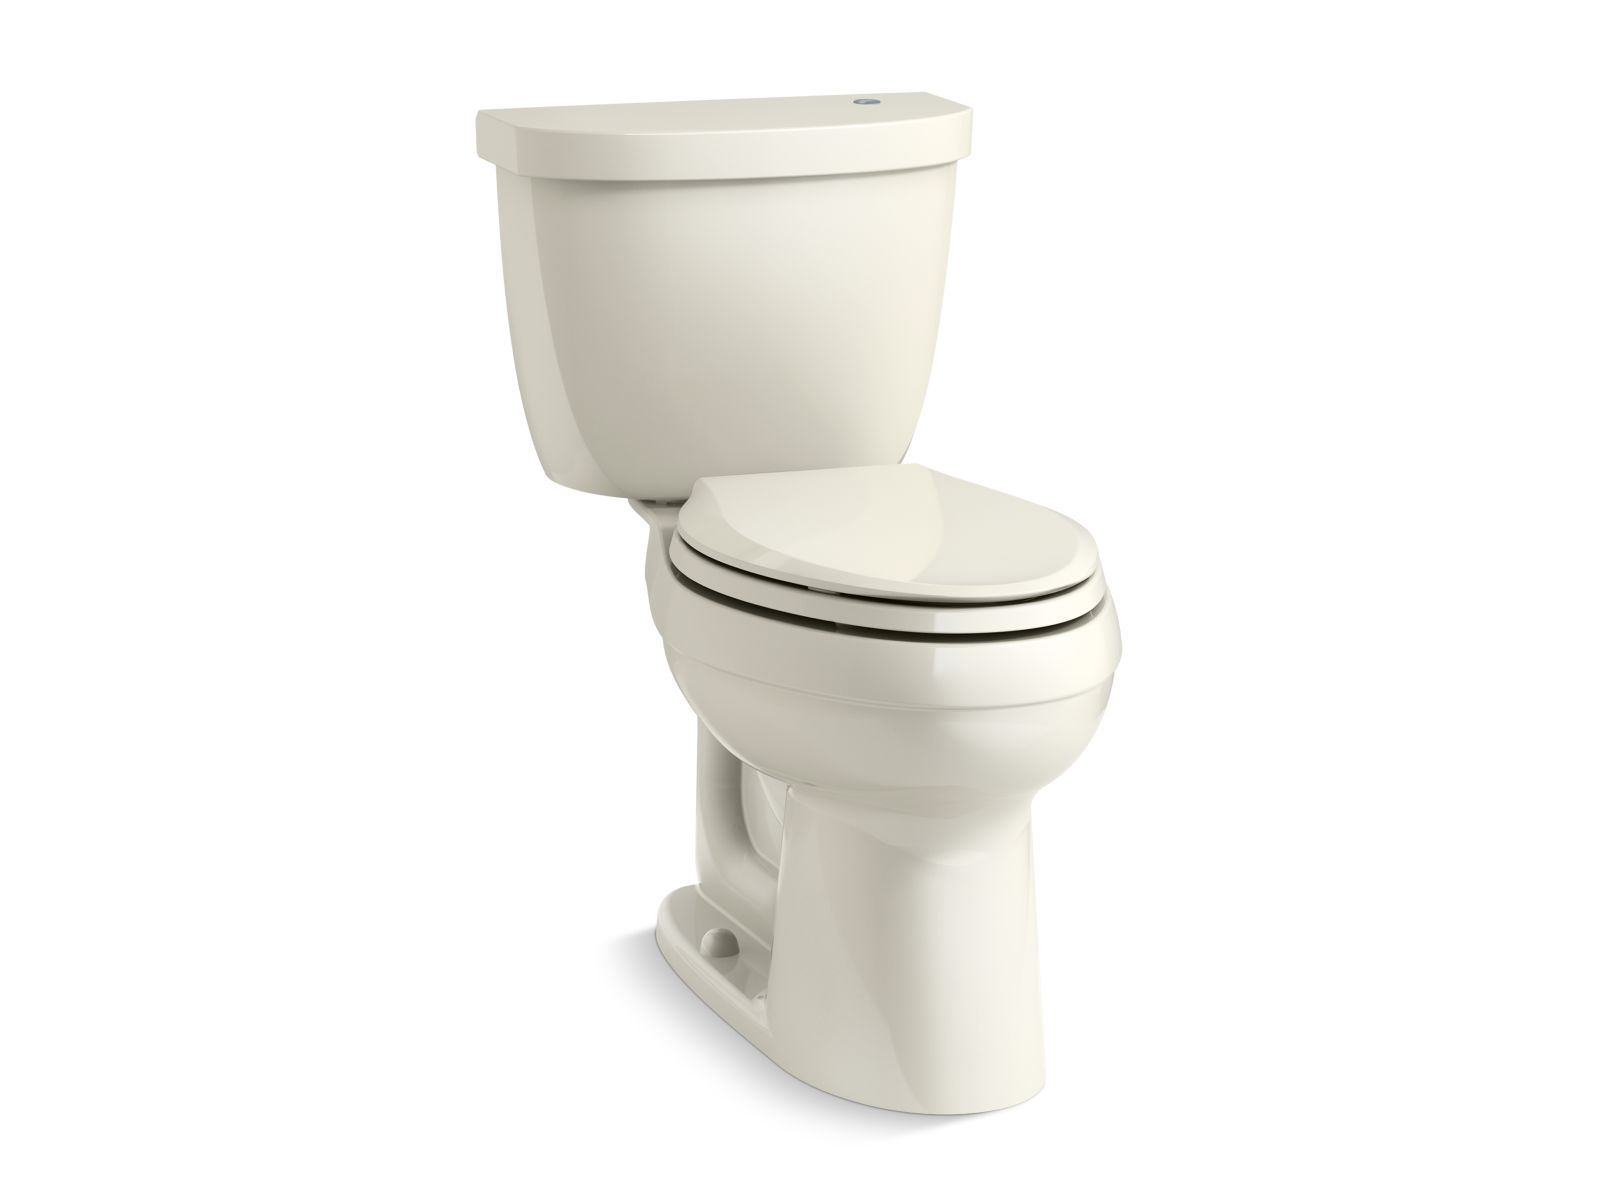 Kohler Cimarron® K-6418-96 Touchless Comfort Height® two-piece elongated 1.28 gpf toilet with AquaPiston® flushing technology Biscuit